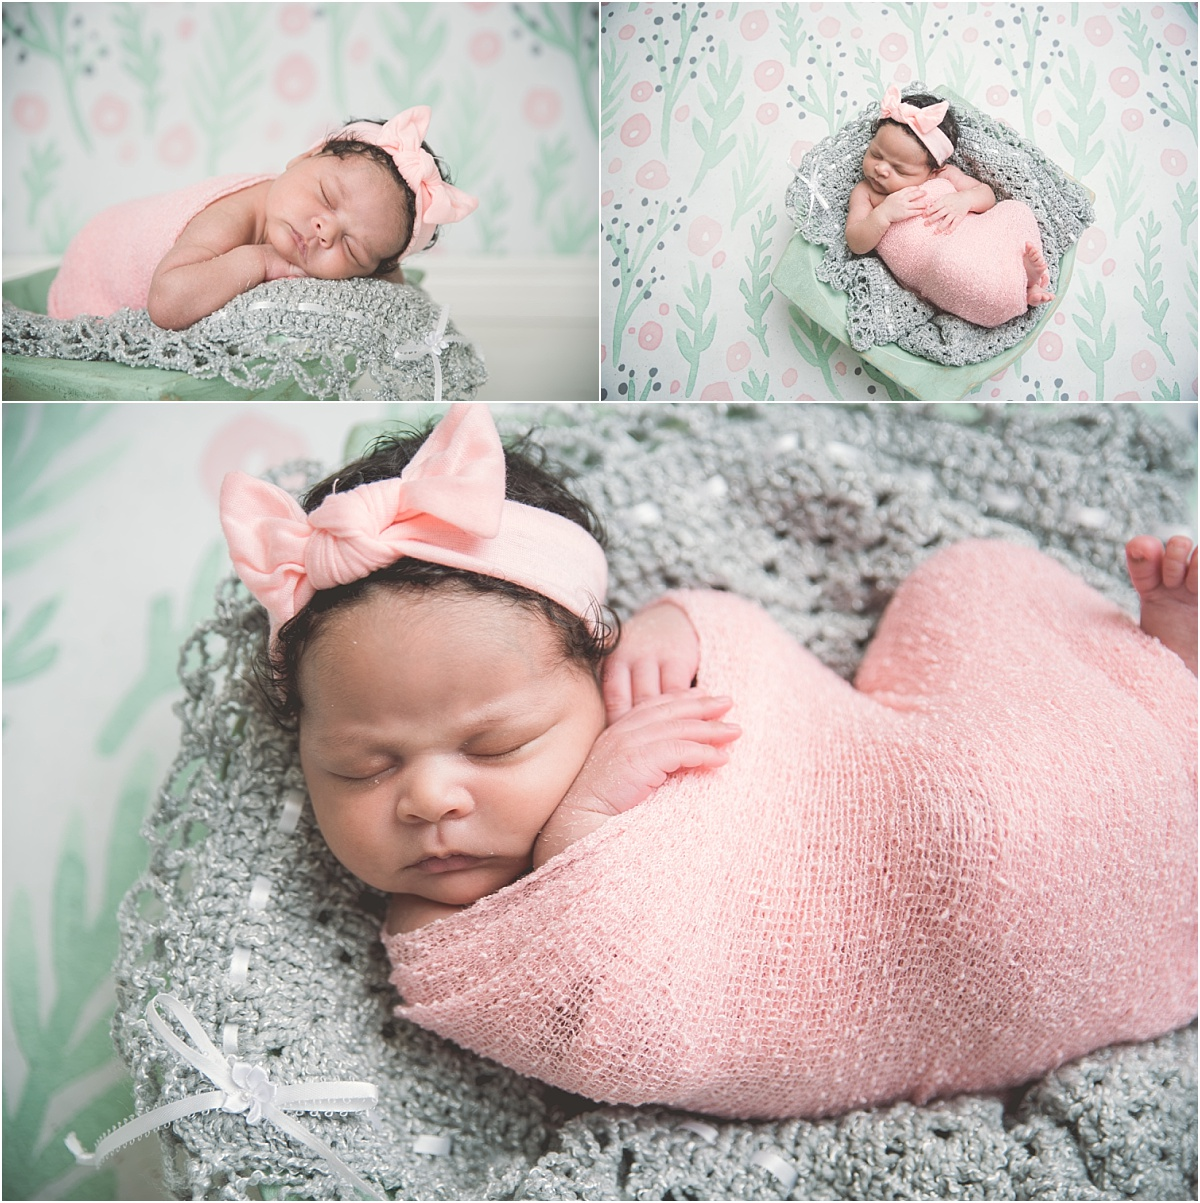 Stacey-Hansen-Photography-Newborn-Photographer-Logan-Utah (6)